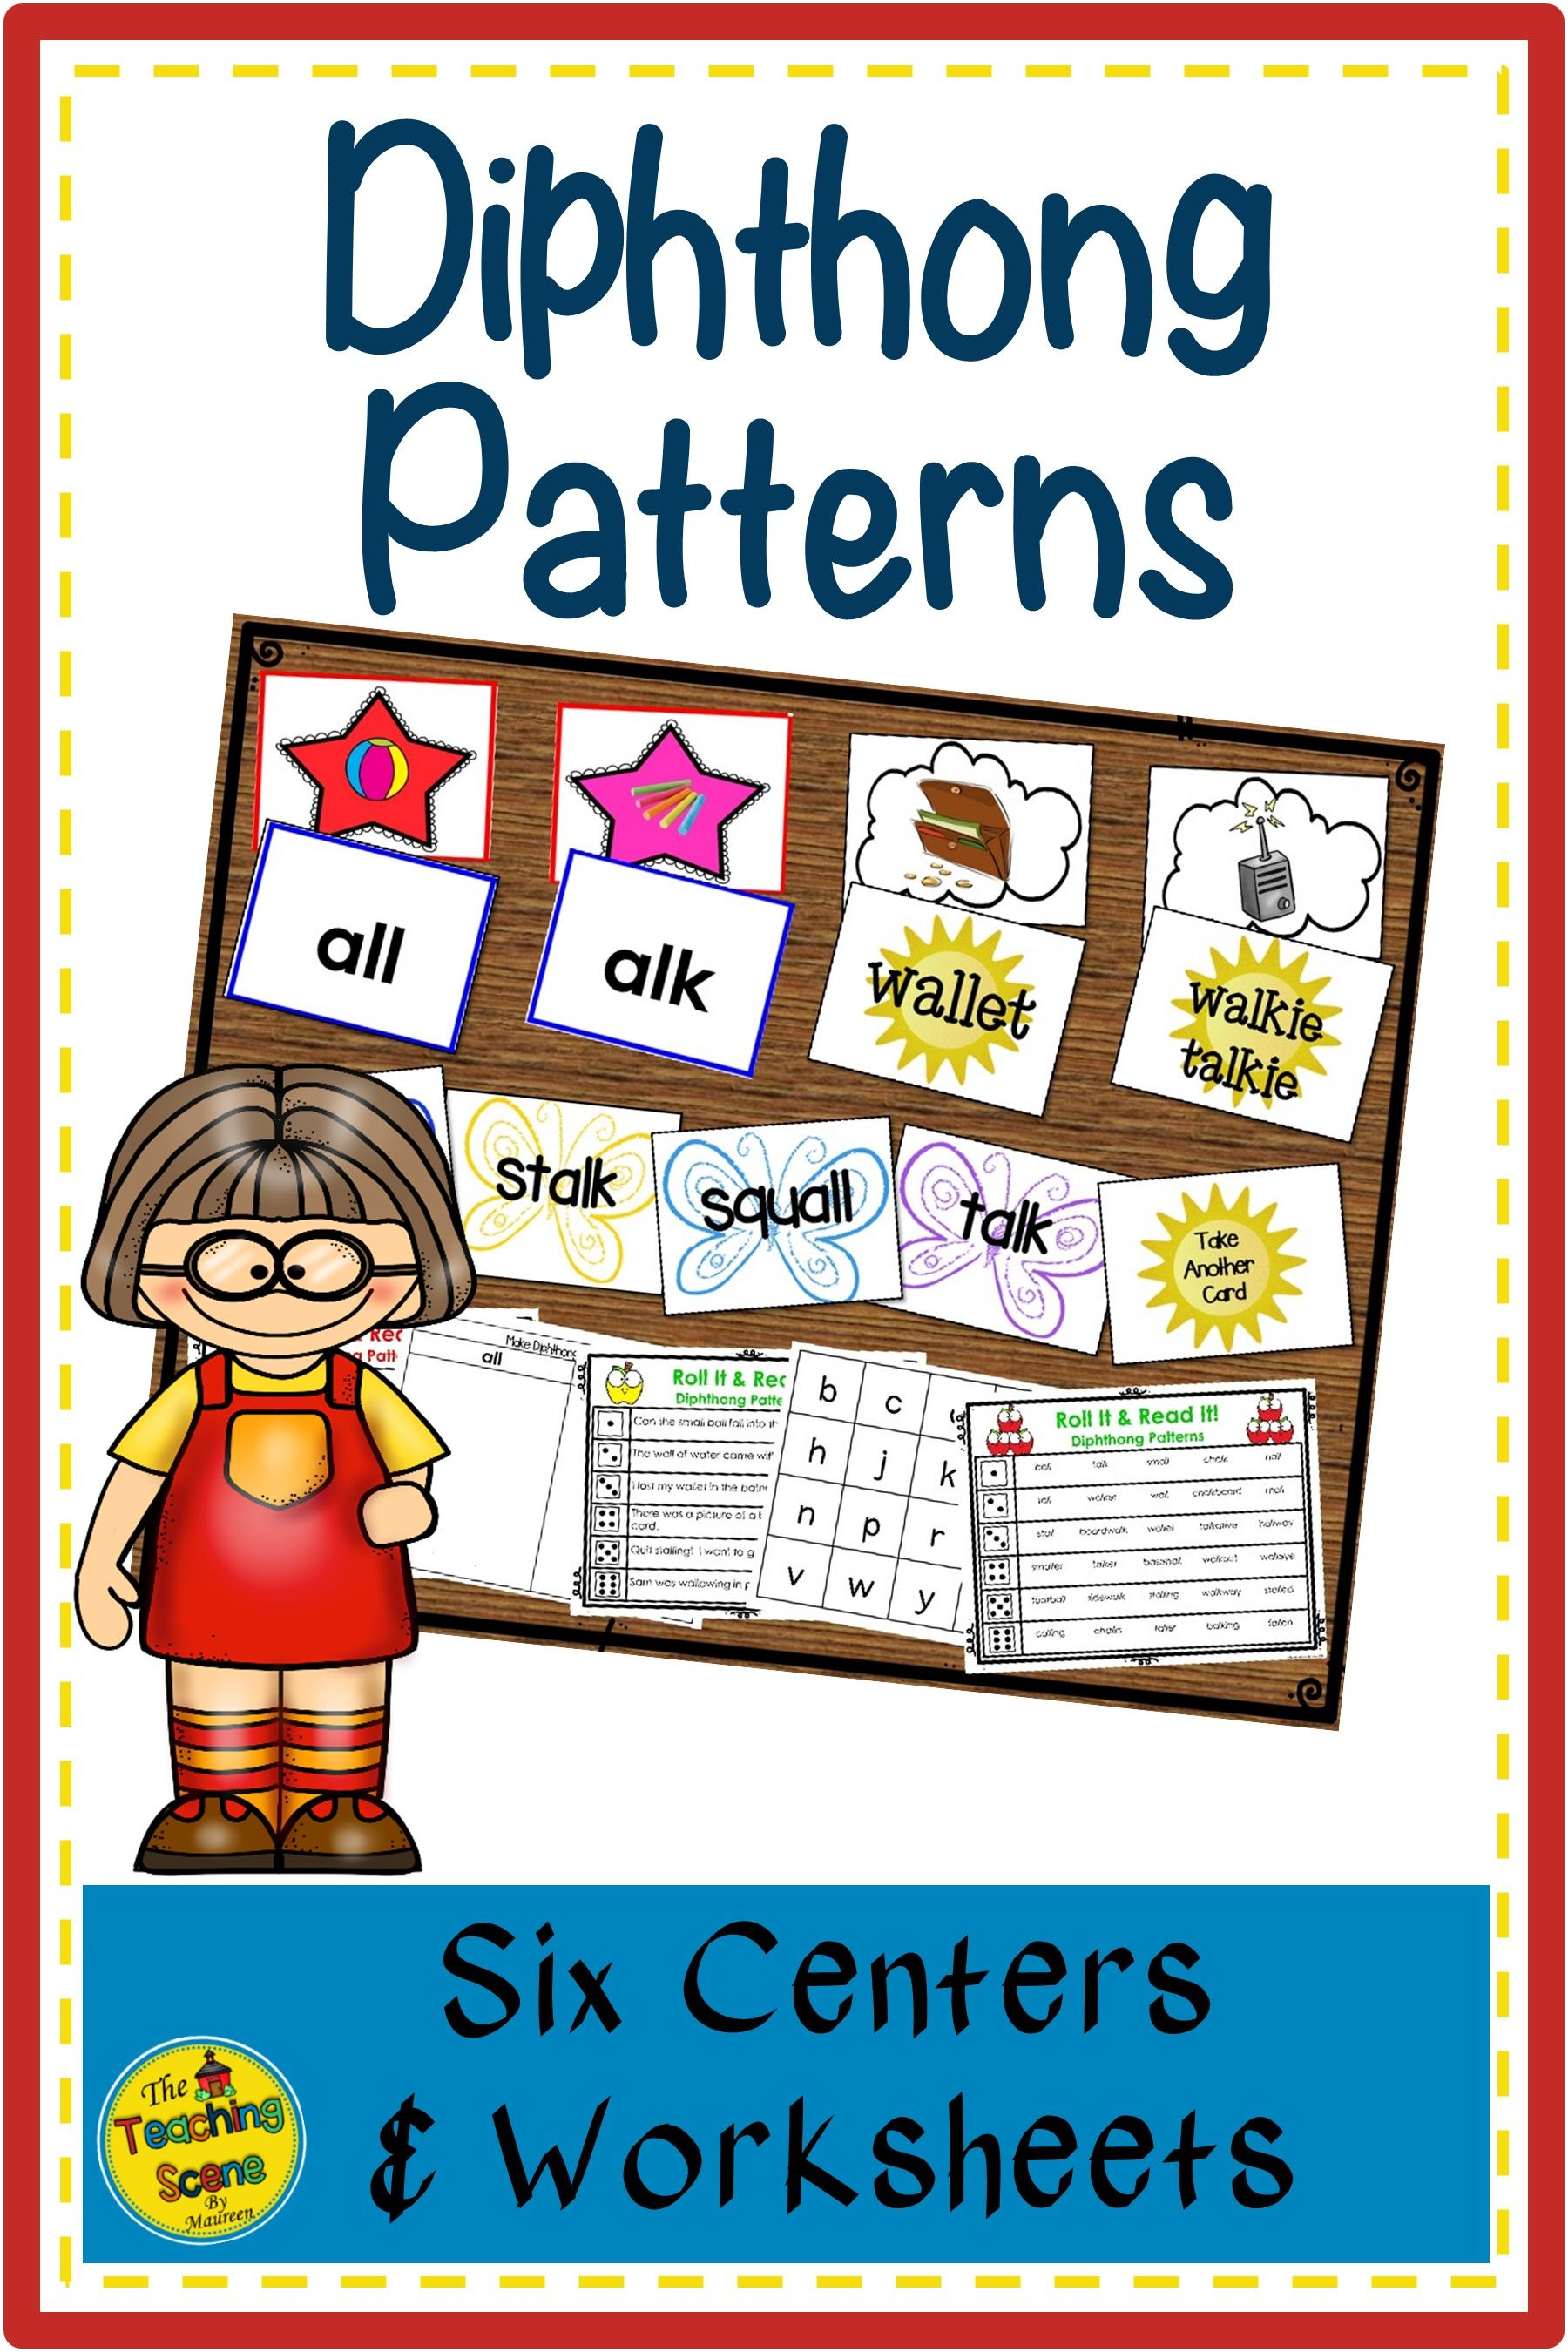 Diphthong Patterns All Amp Alk Centers Amp Worksheets In